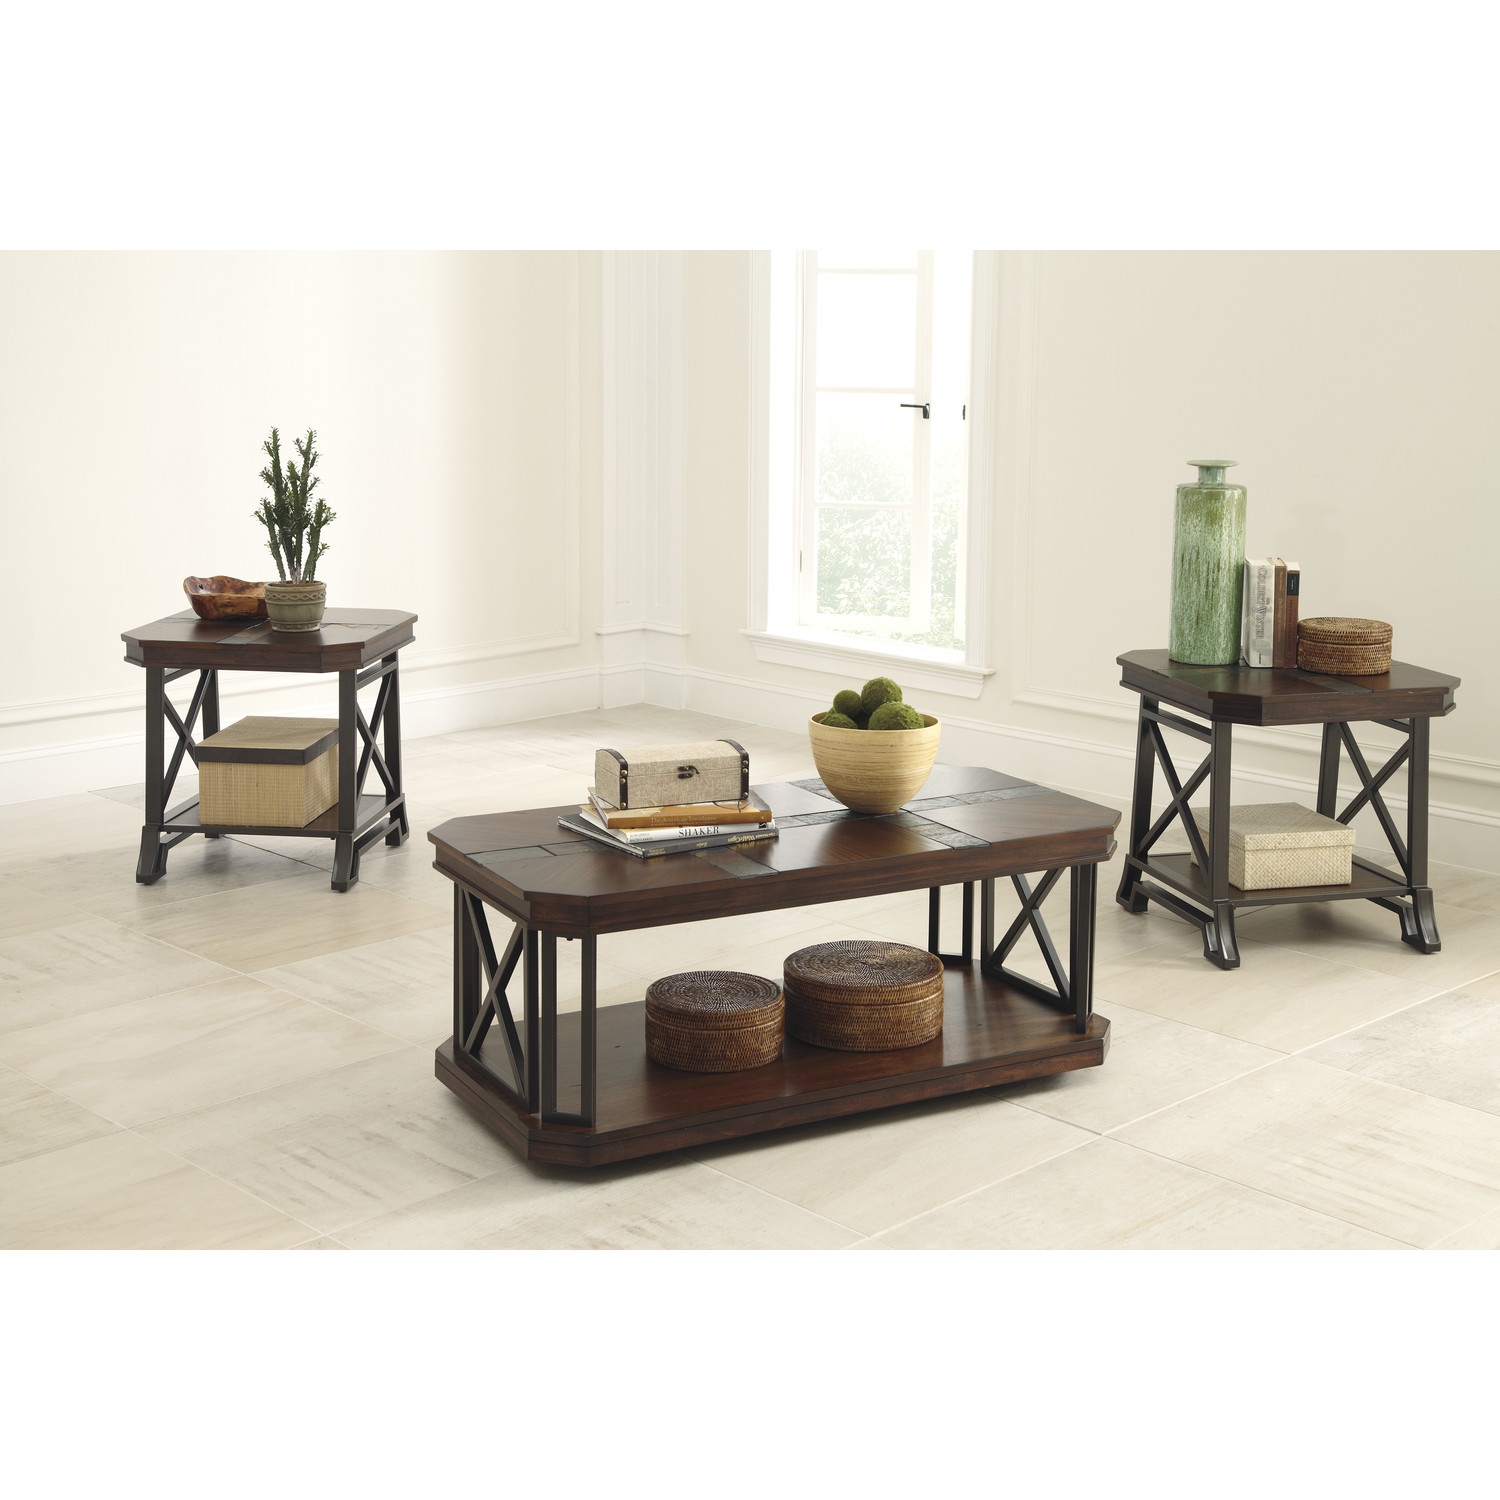 free-download-3-Pieces-Coffee-Tables-Sets-brown-color-square-shape-free-download (Image 5 of 10)